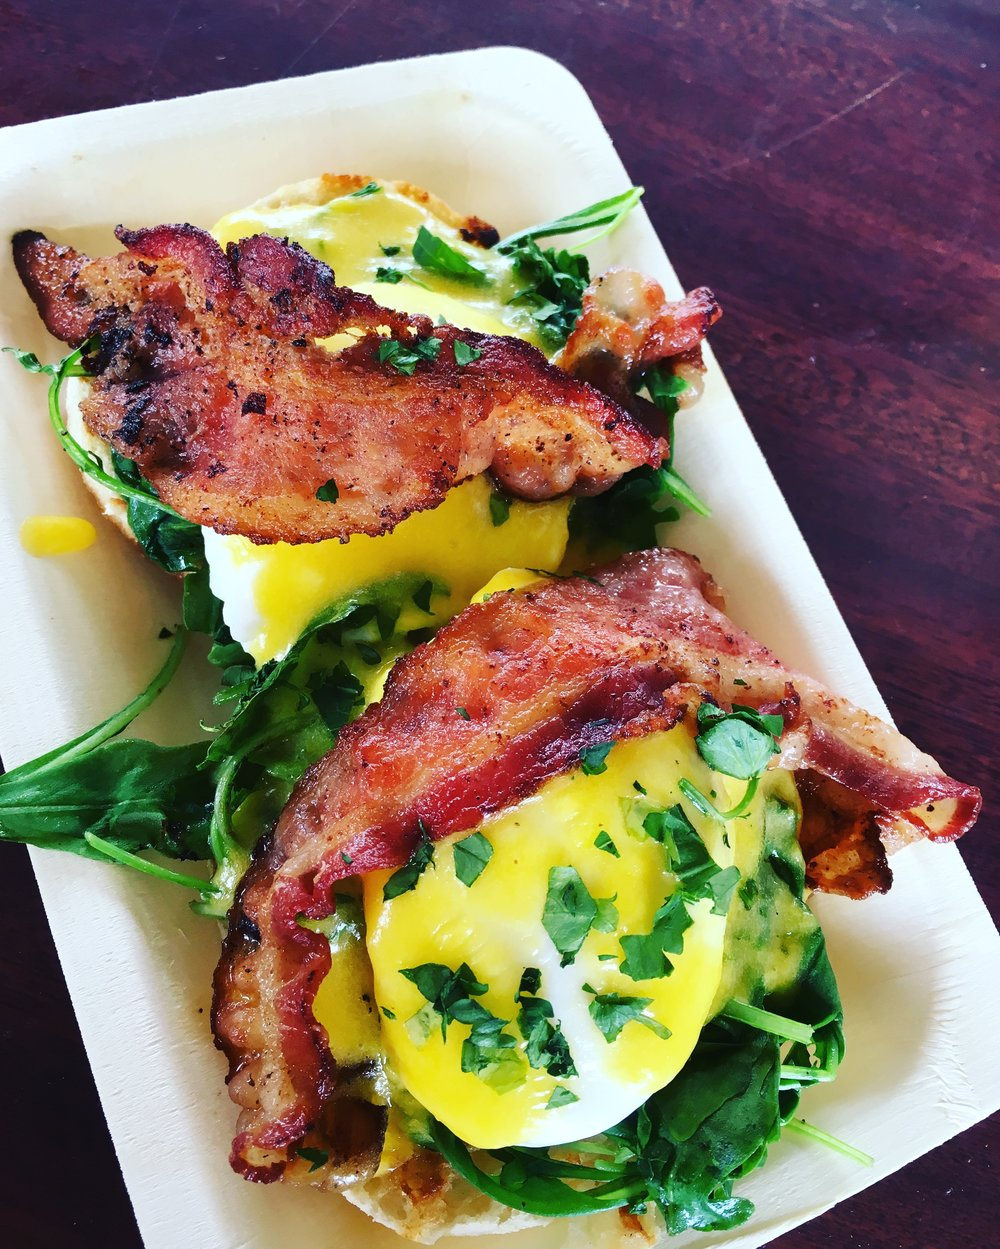 Eggs Benedict with Poached Eggs, Bacon, Arugula and Hollandaise on English Muffins